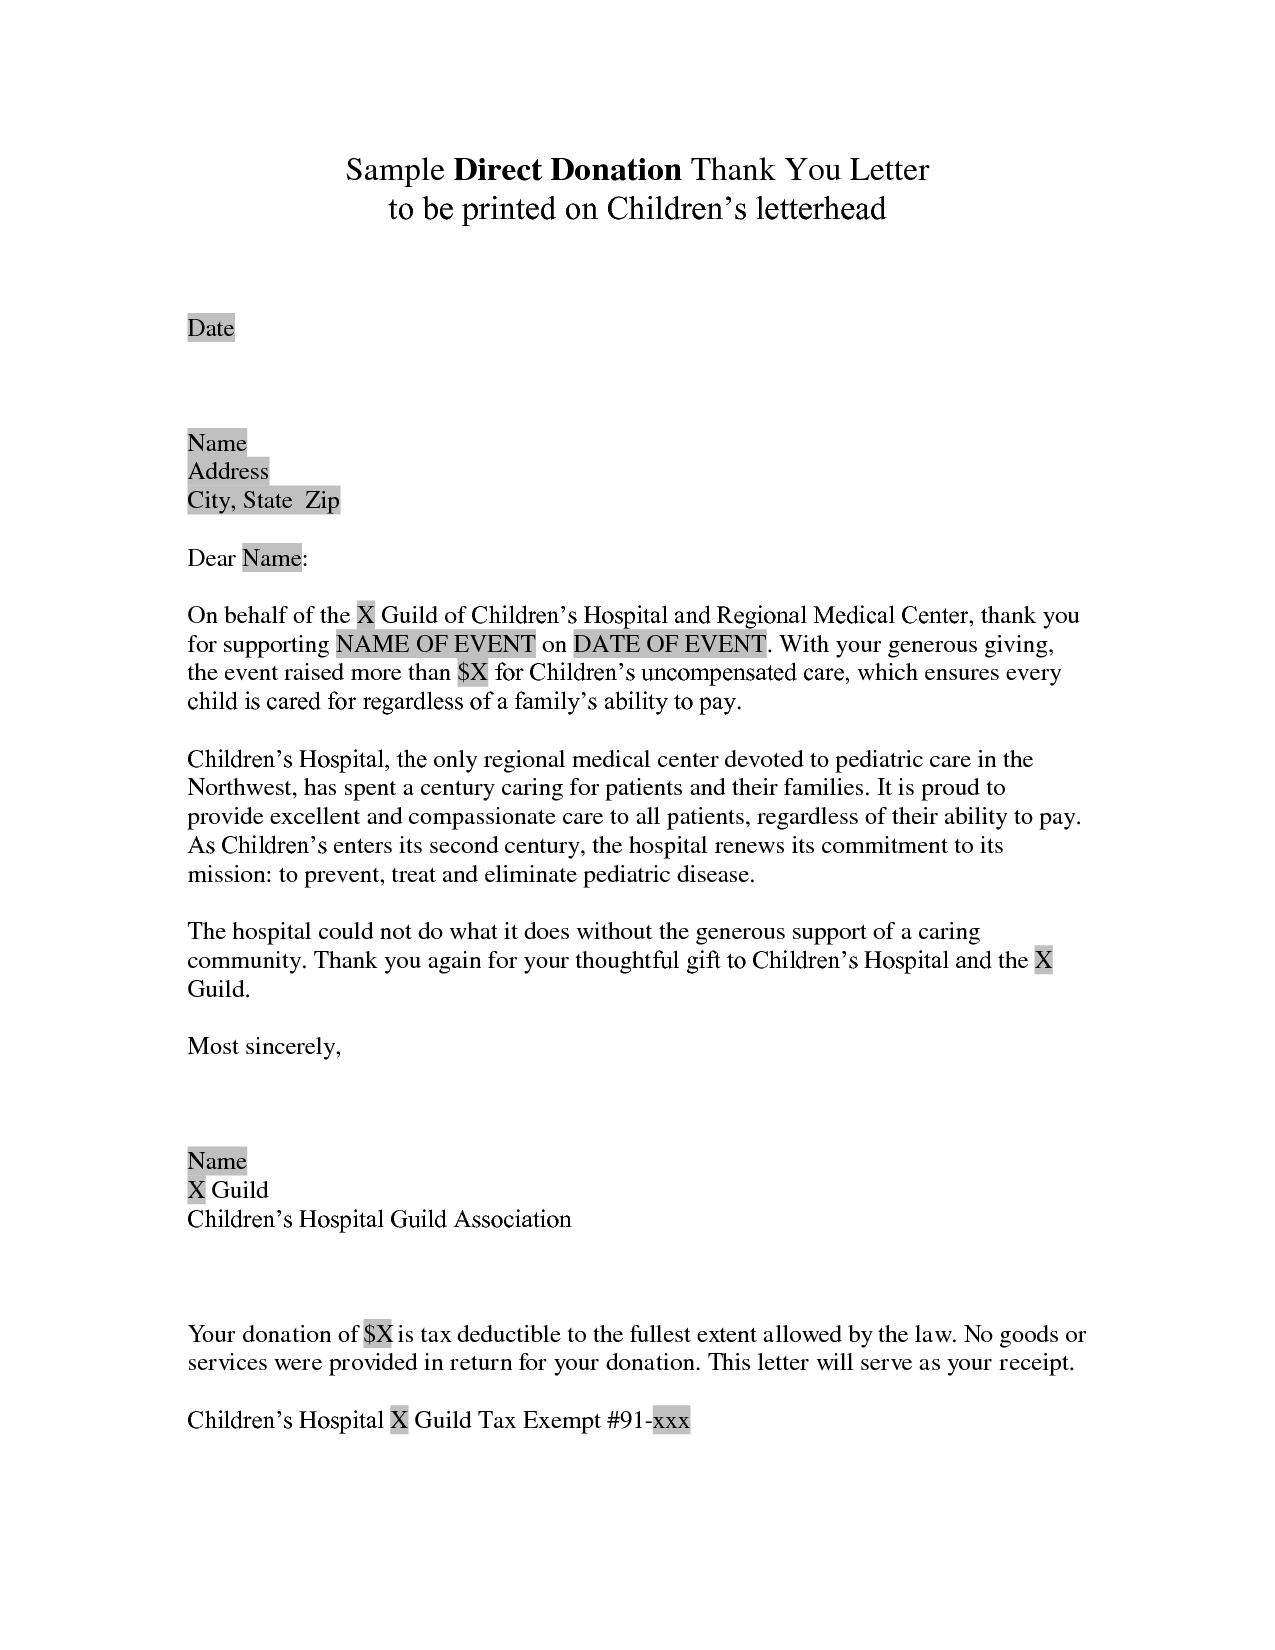 donation letter template non profit example-donor thank you letter sample 8-l